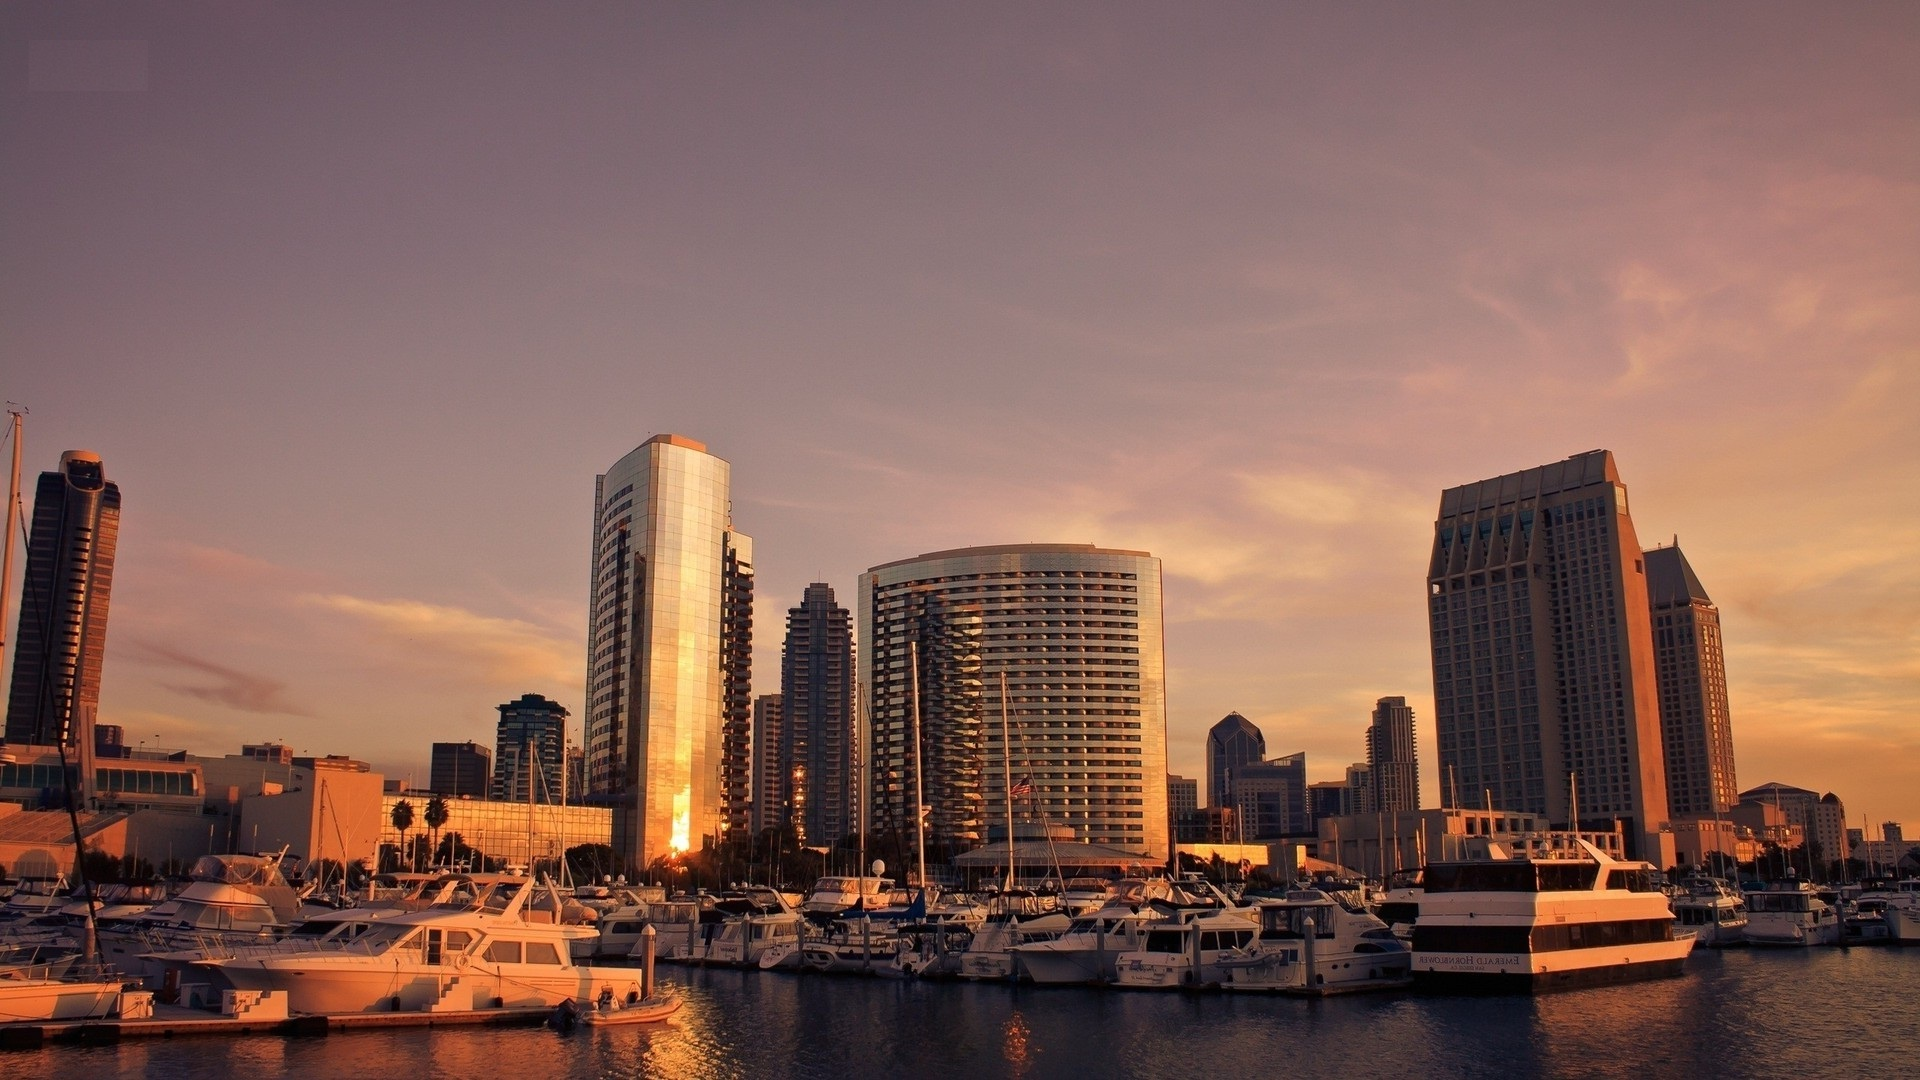 San Diego 19201080 Hd Wallpaper 1920x1080